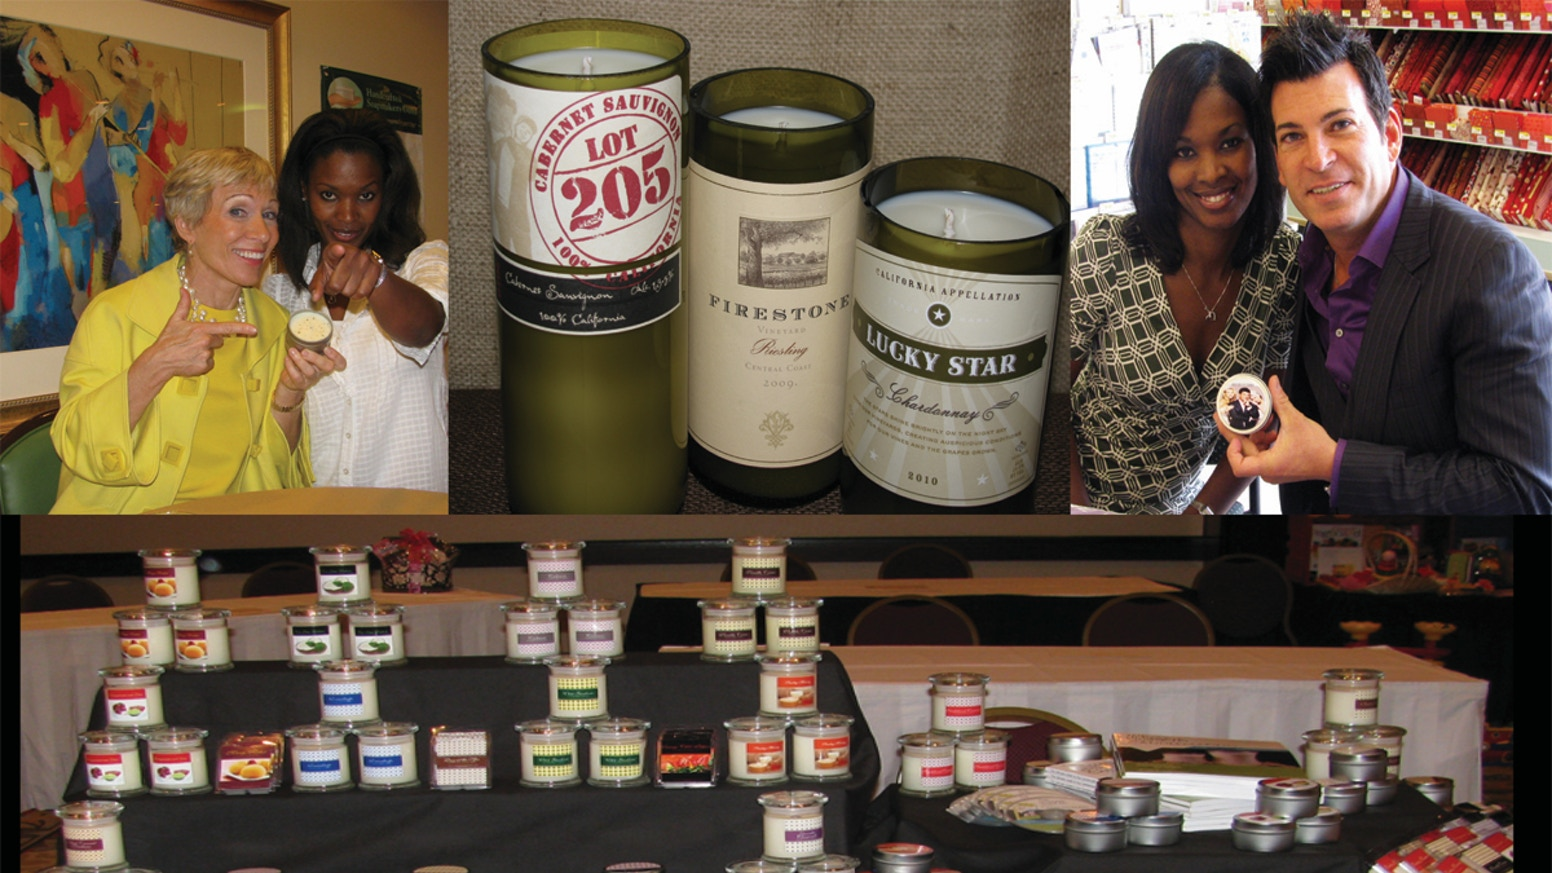 American Made Soy Candles in Recyclable Containers by Jameel Nolan